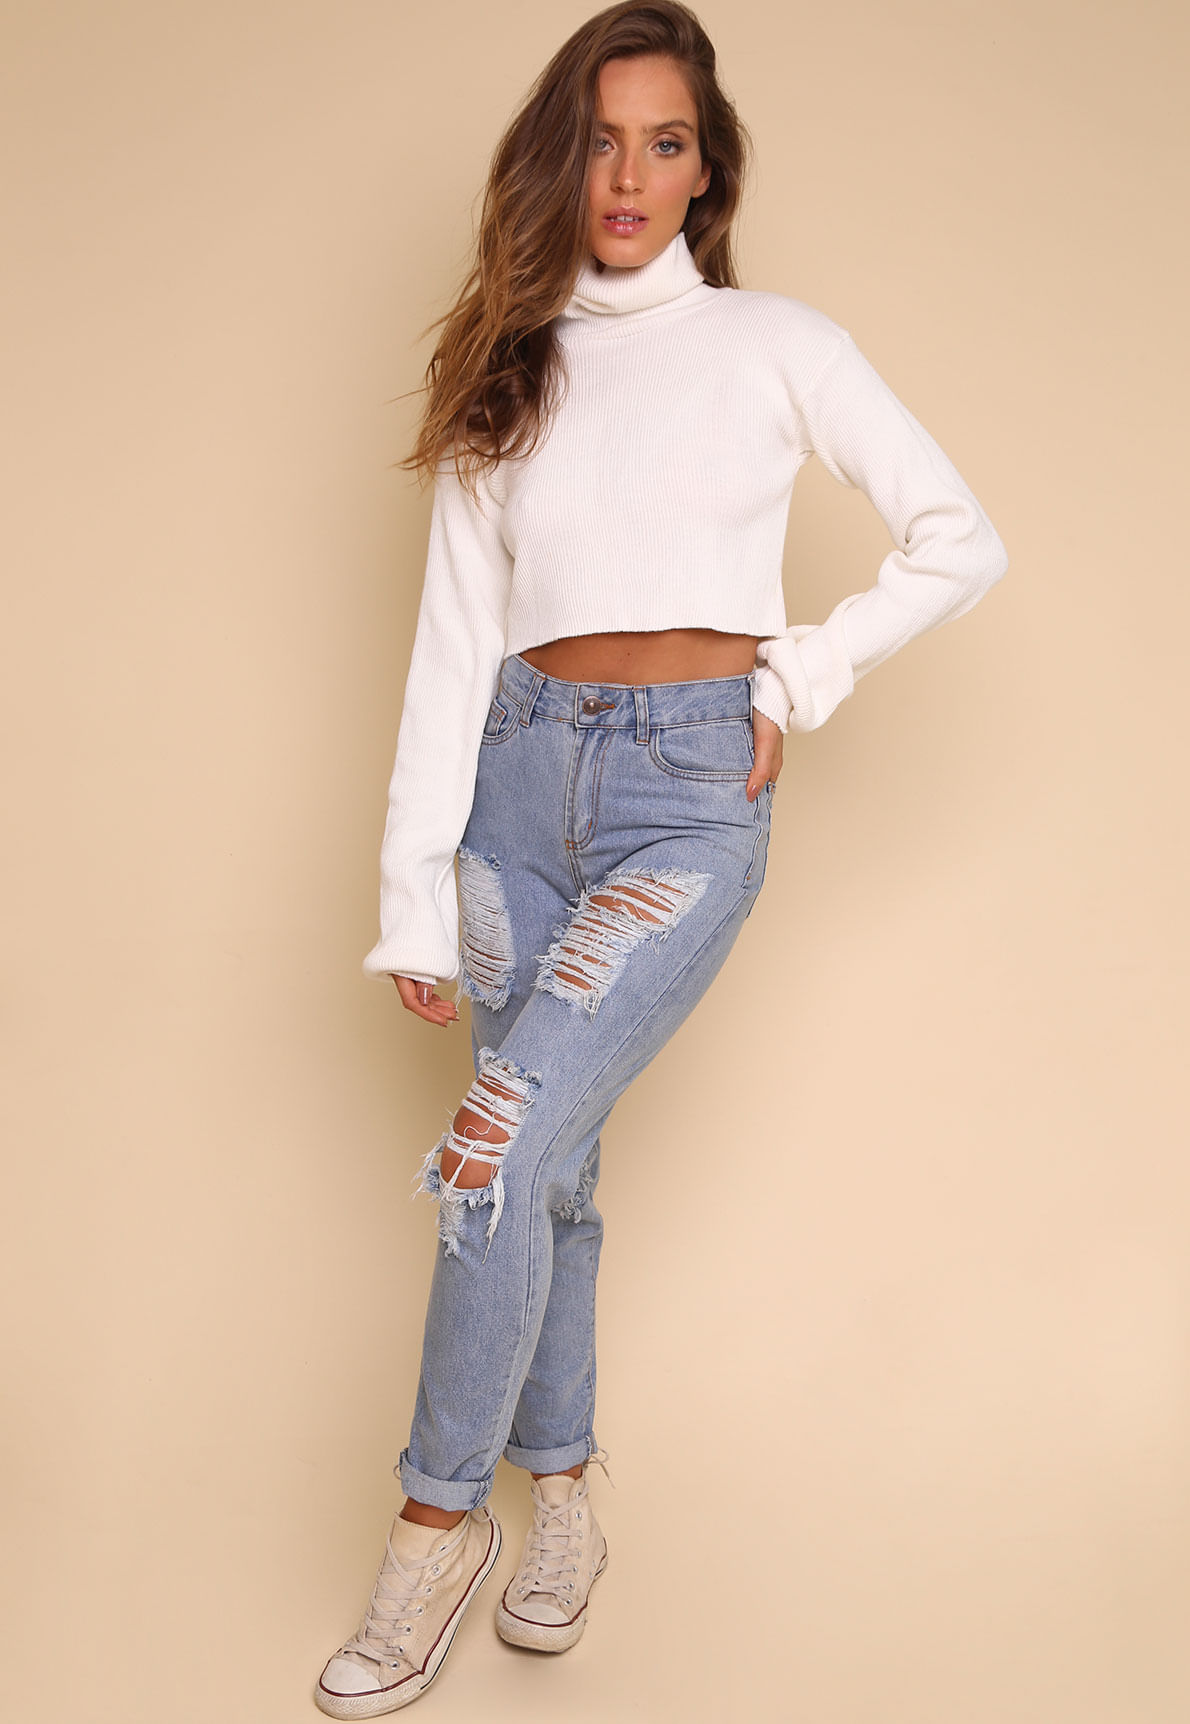 25668-calca-baggy-jeans-destroyed-melissa-mundo-lolita-08